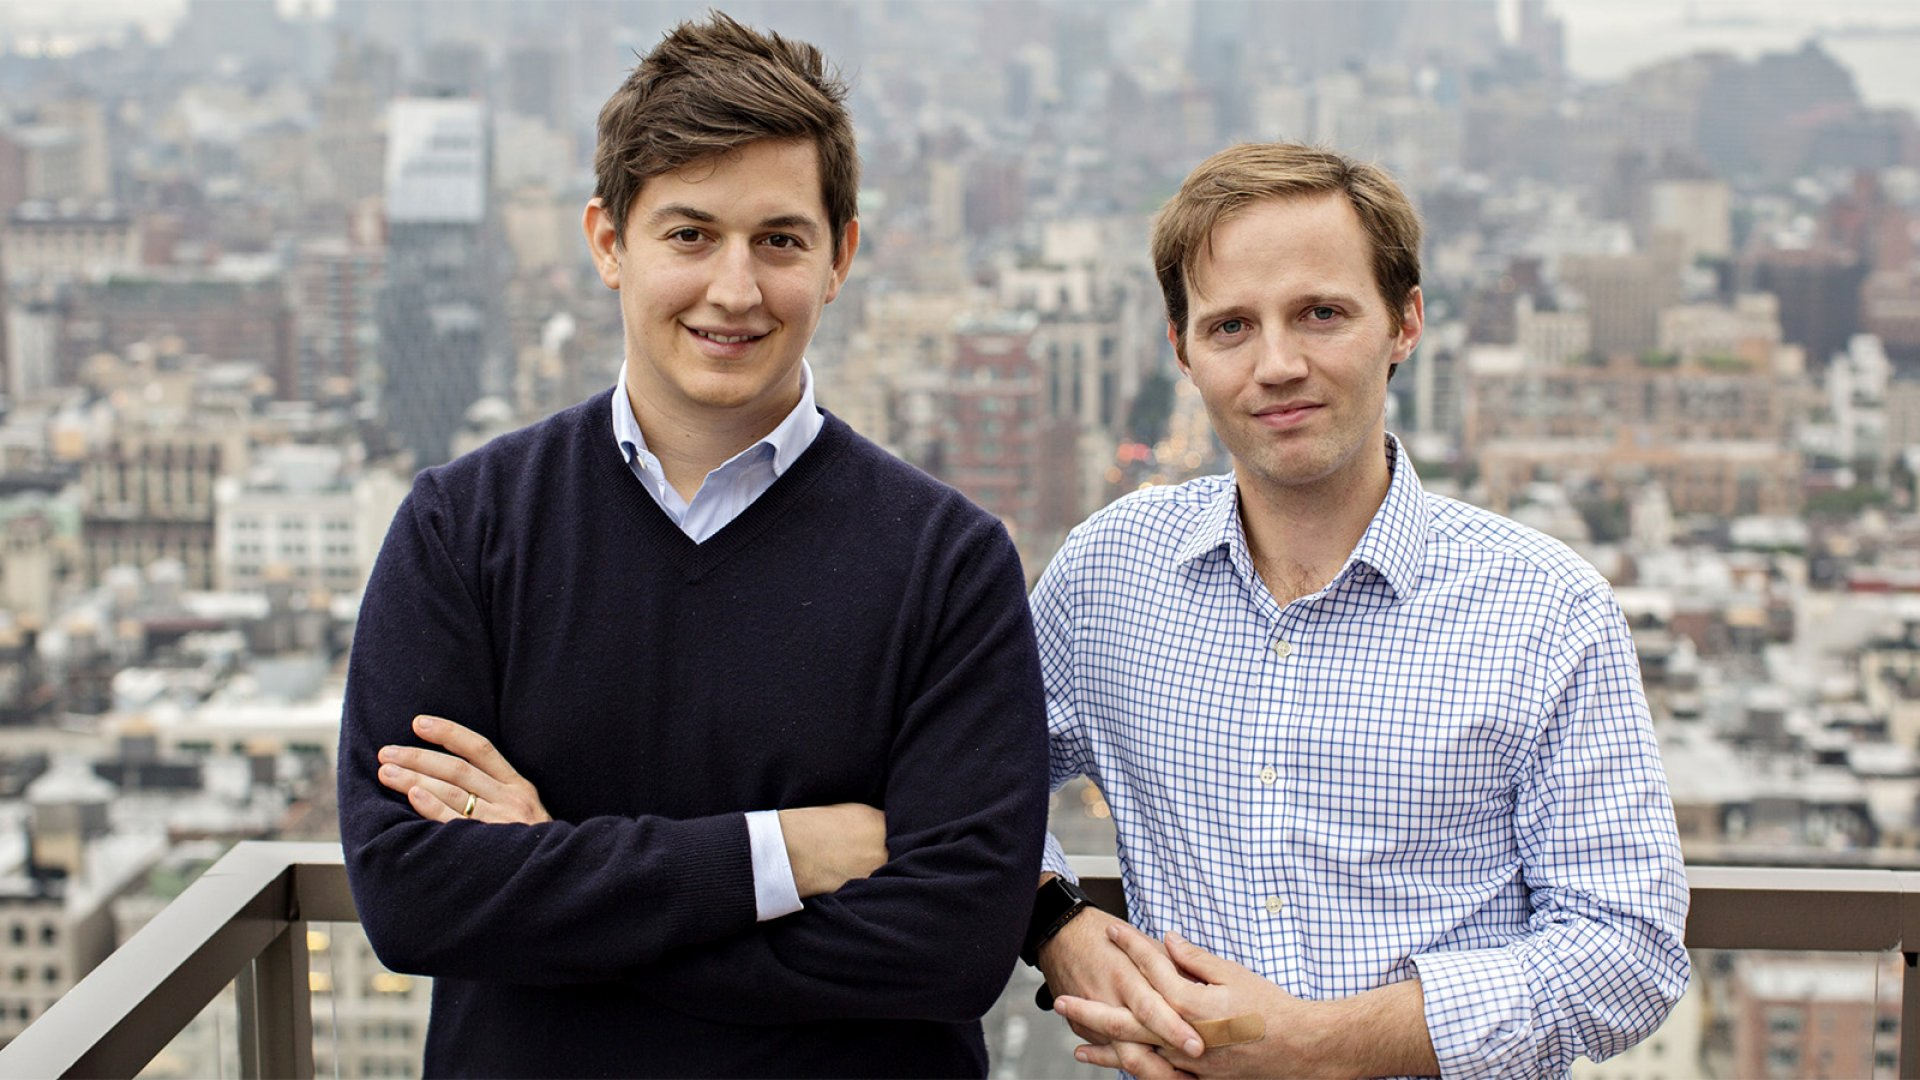 How This Startup Plans to Fund $100 Million in Loans This Year